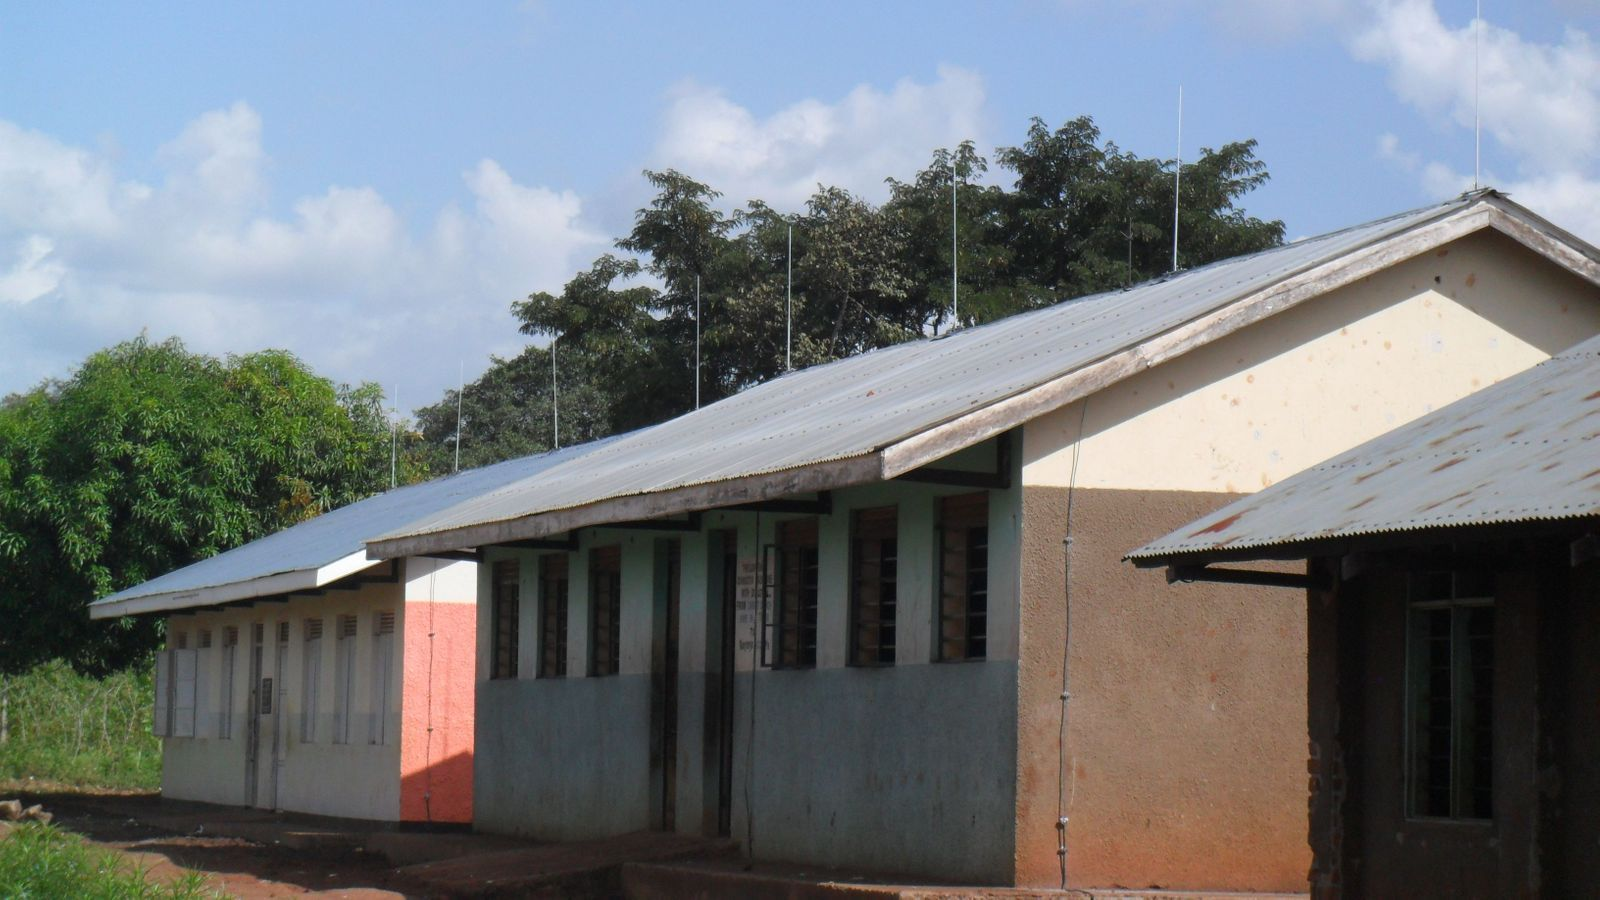 Classroom buildings after Lightning Protection System installed